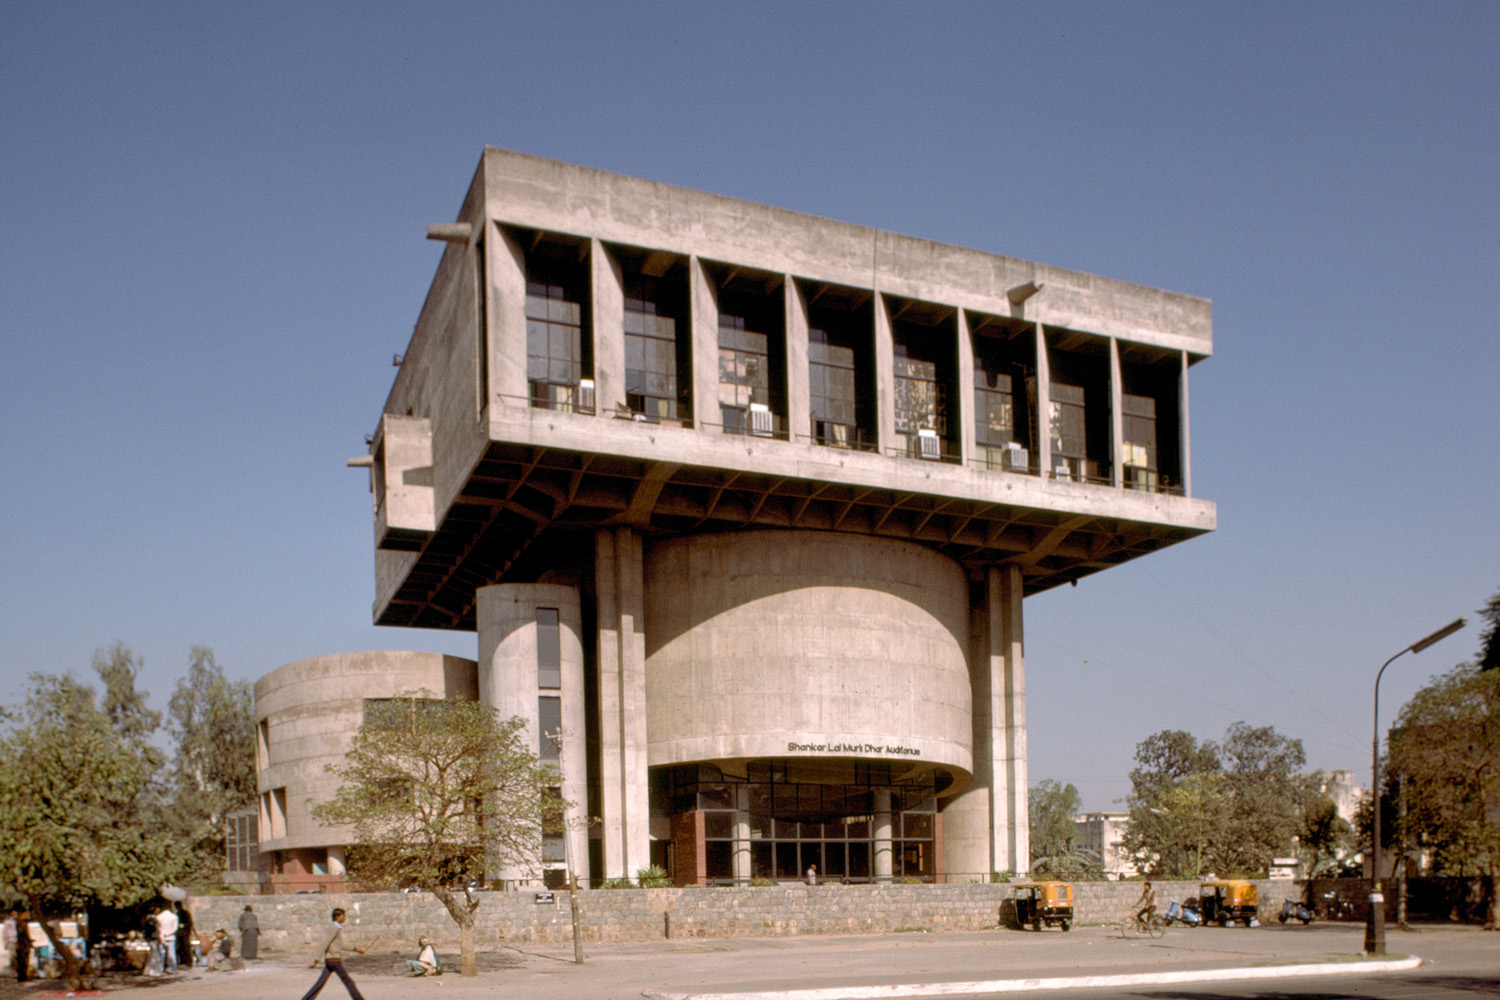 Shri Ram Centre for Performing Arts - (1972, Shiv Nath Prasad)© MIT, photograph by Peter Serenyi.